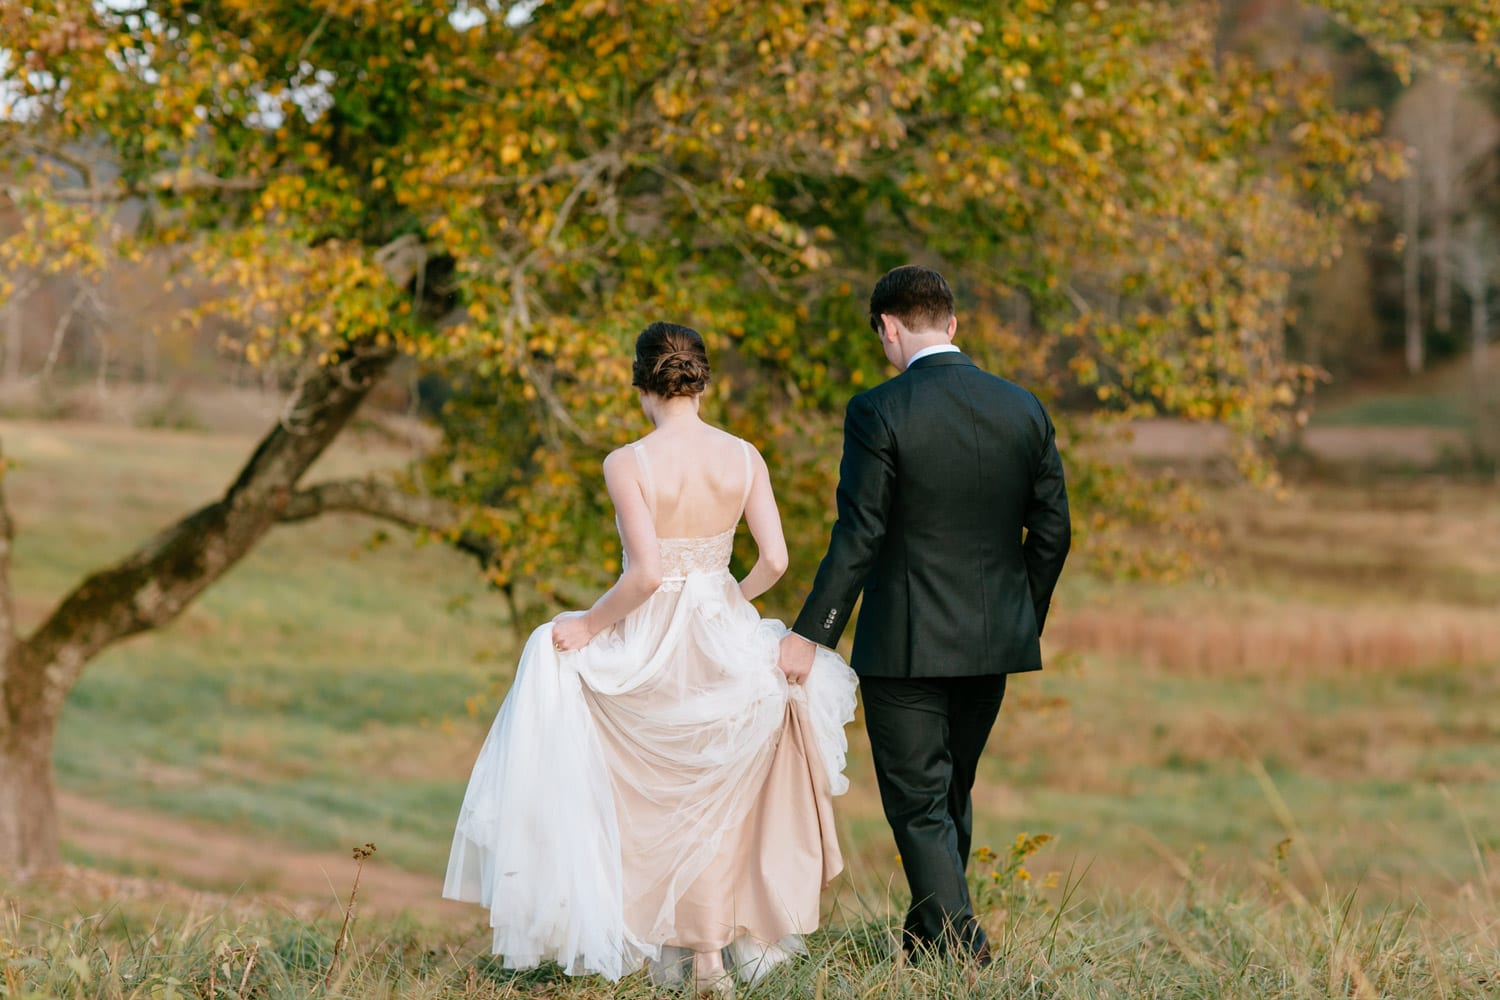 Bride and groom walk through pasture